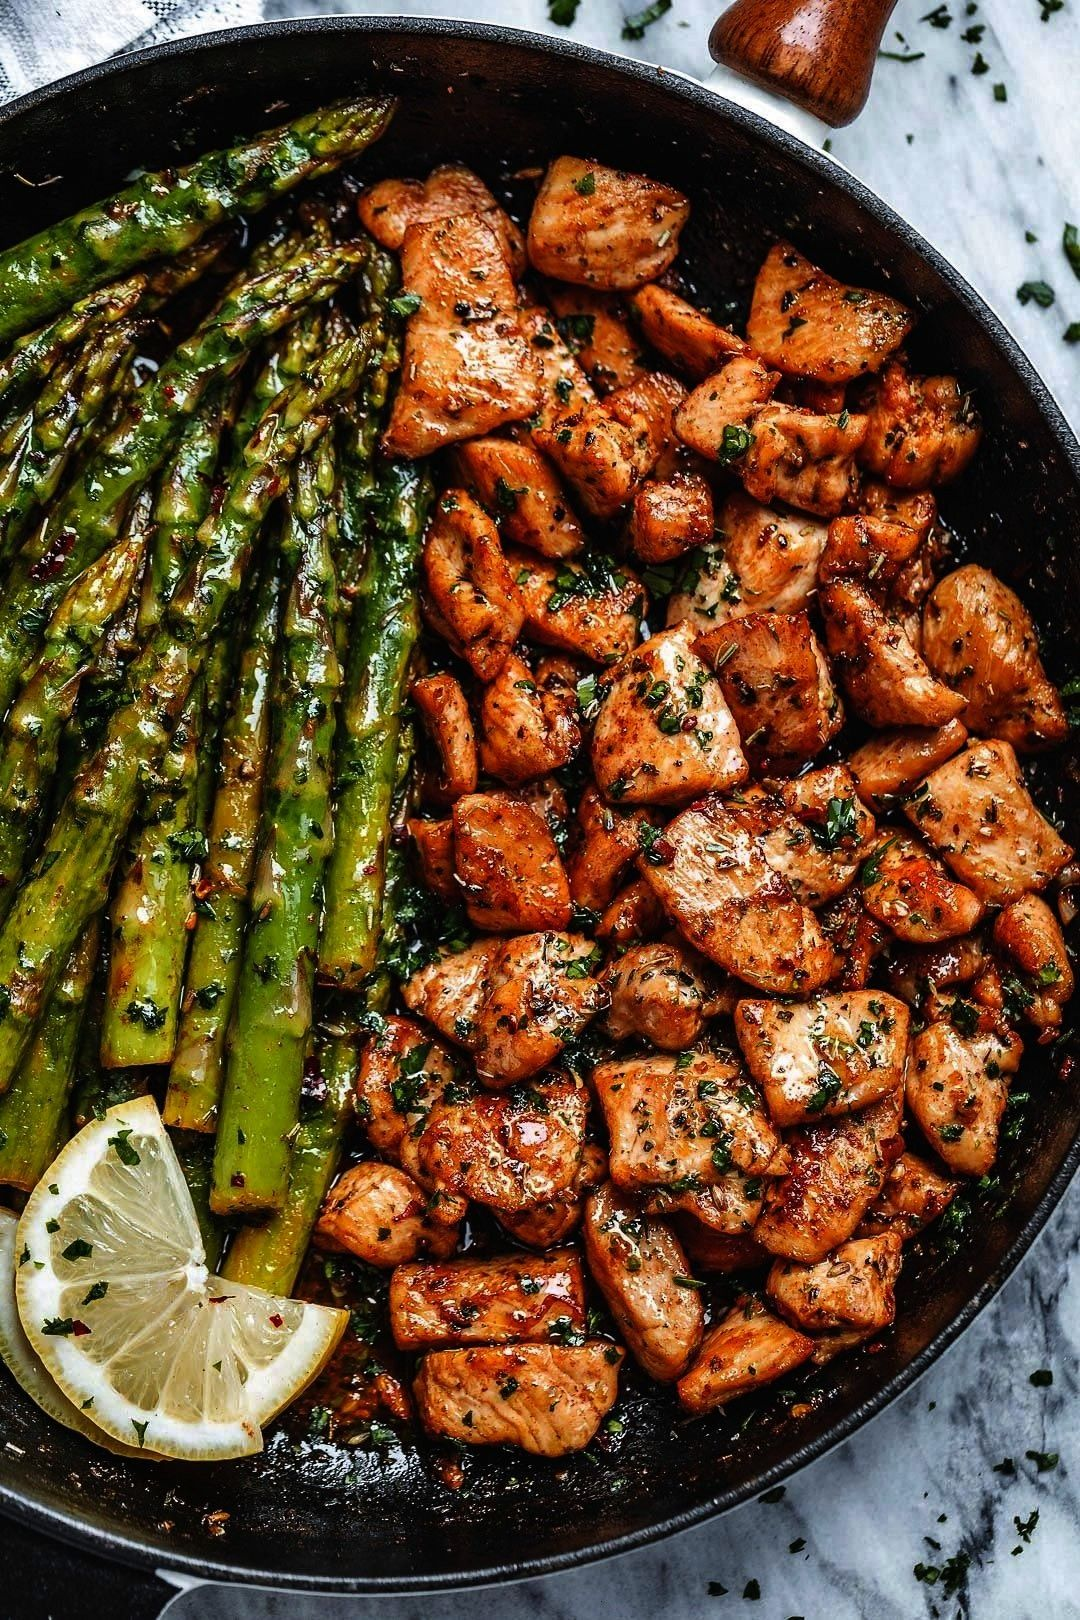 Chicken Bites and Lemon Asparagus - - So much flavor and so easy to throw together, this chicken an